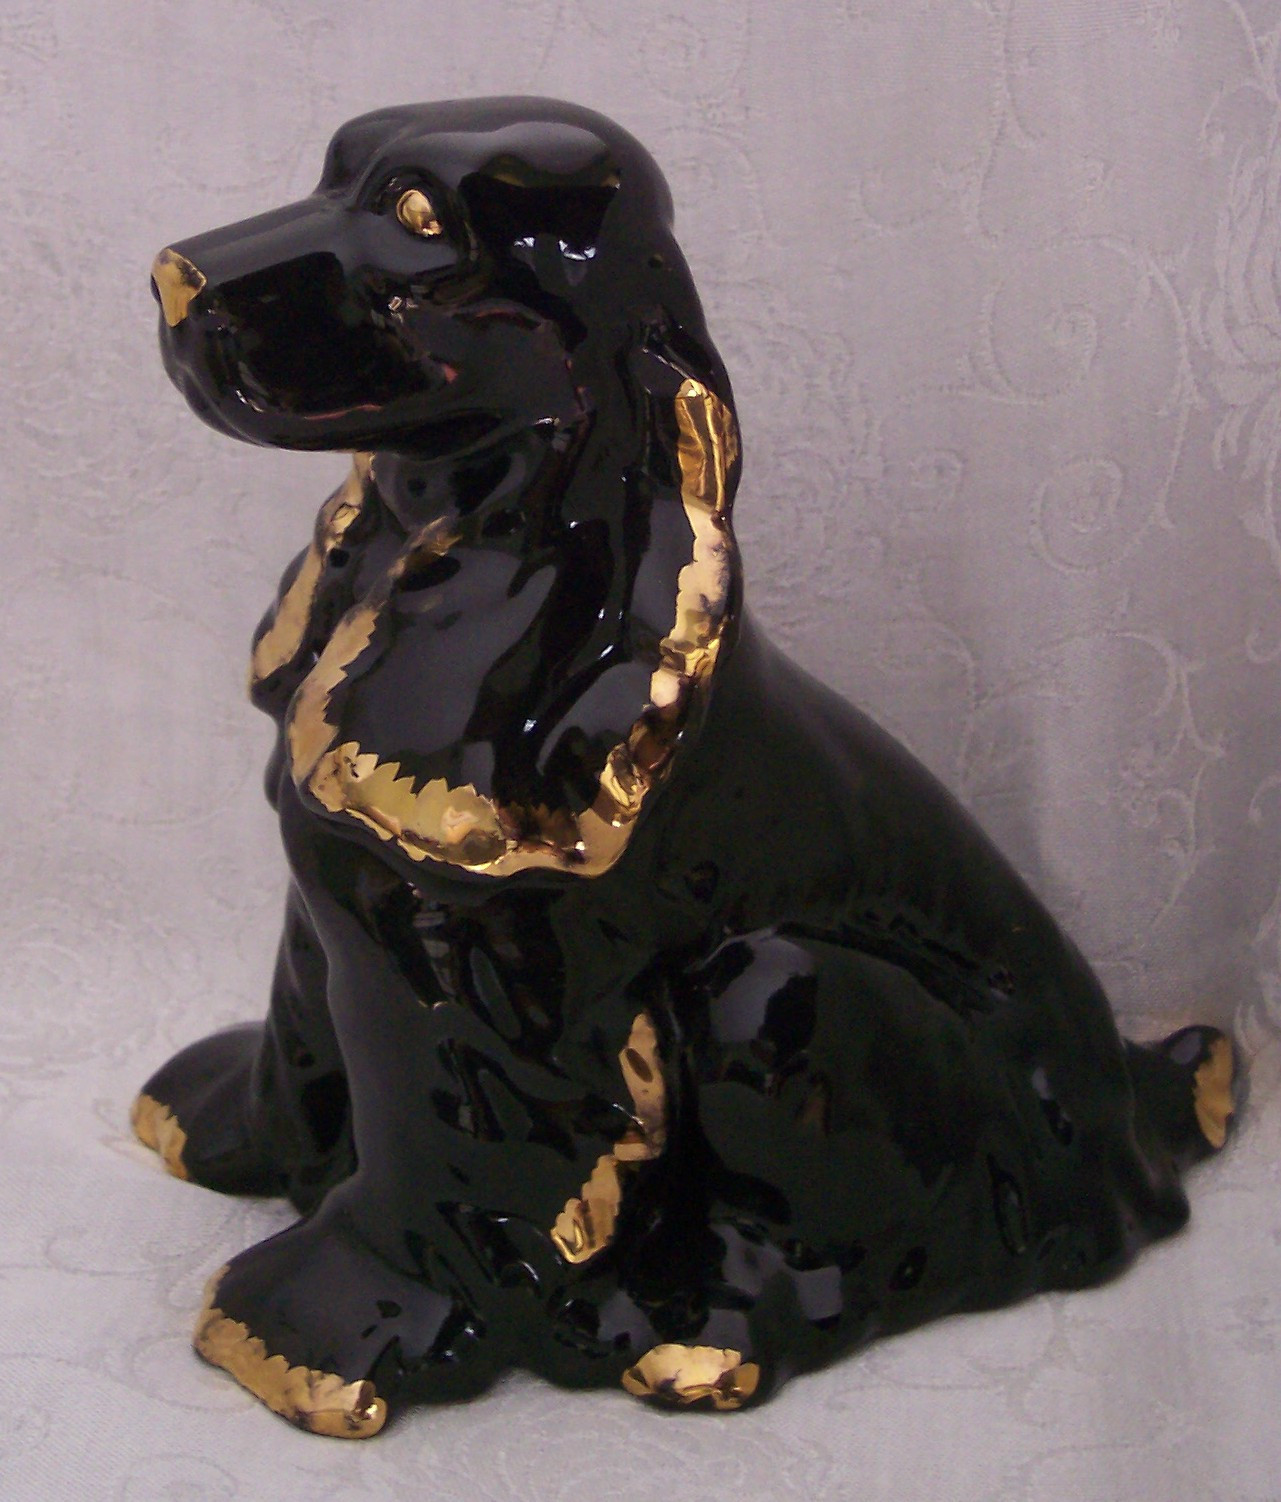 royal haeger vase r1752 of cameron clay cocker spaniel figurine statue and 50 similar items intended for metlox mccoy black cocker spaniel figurine gold trim1